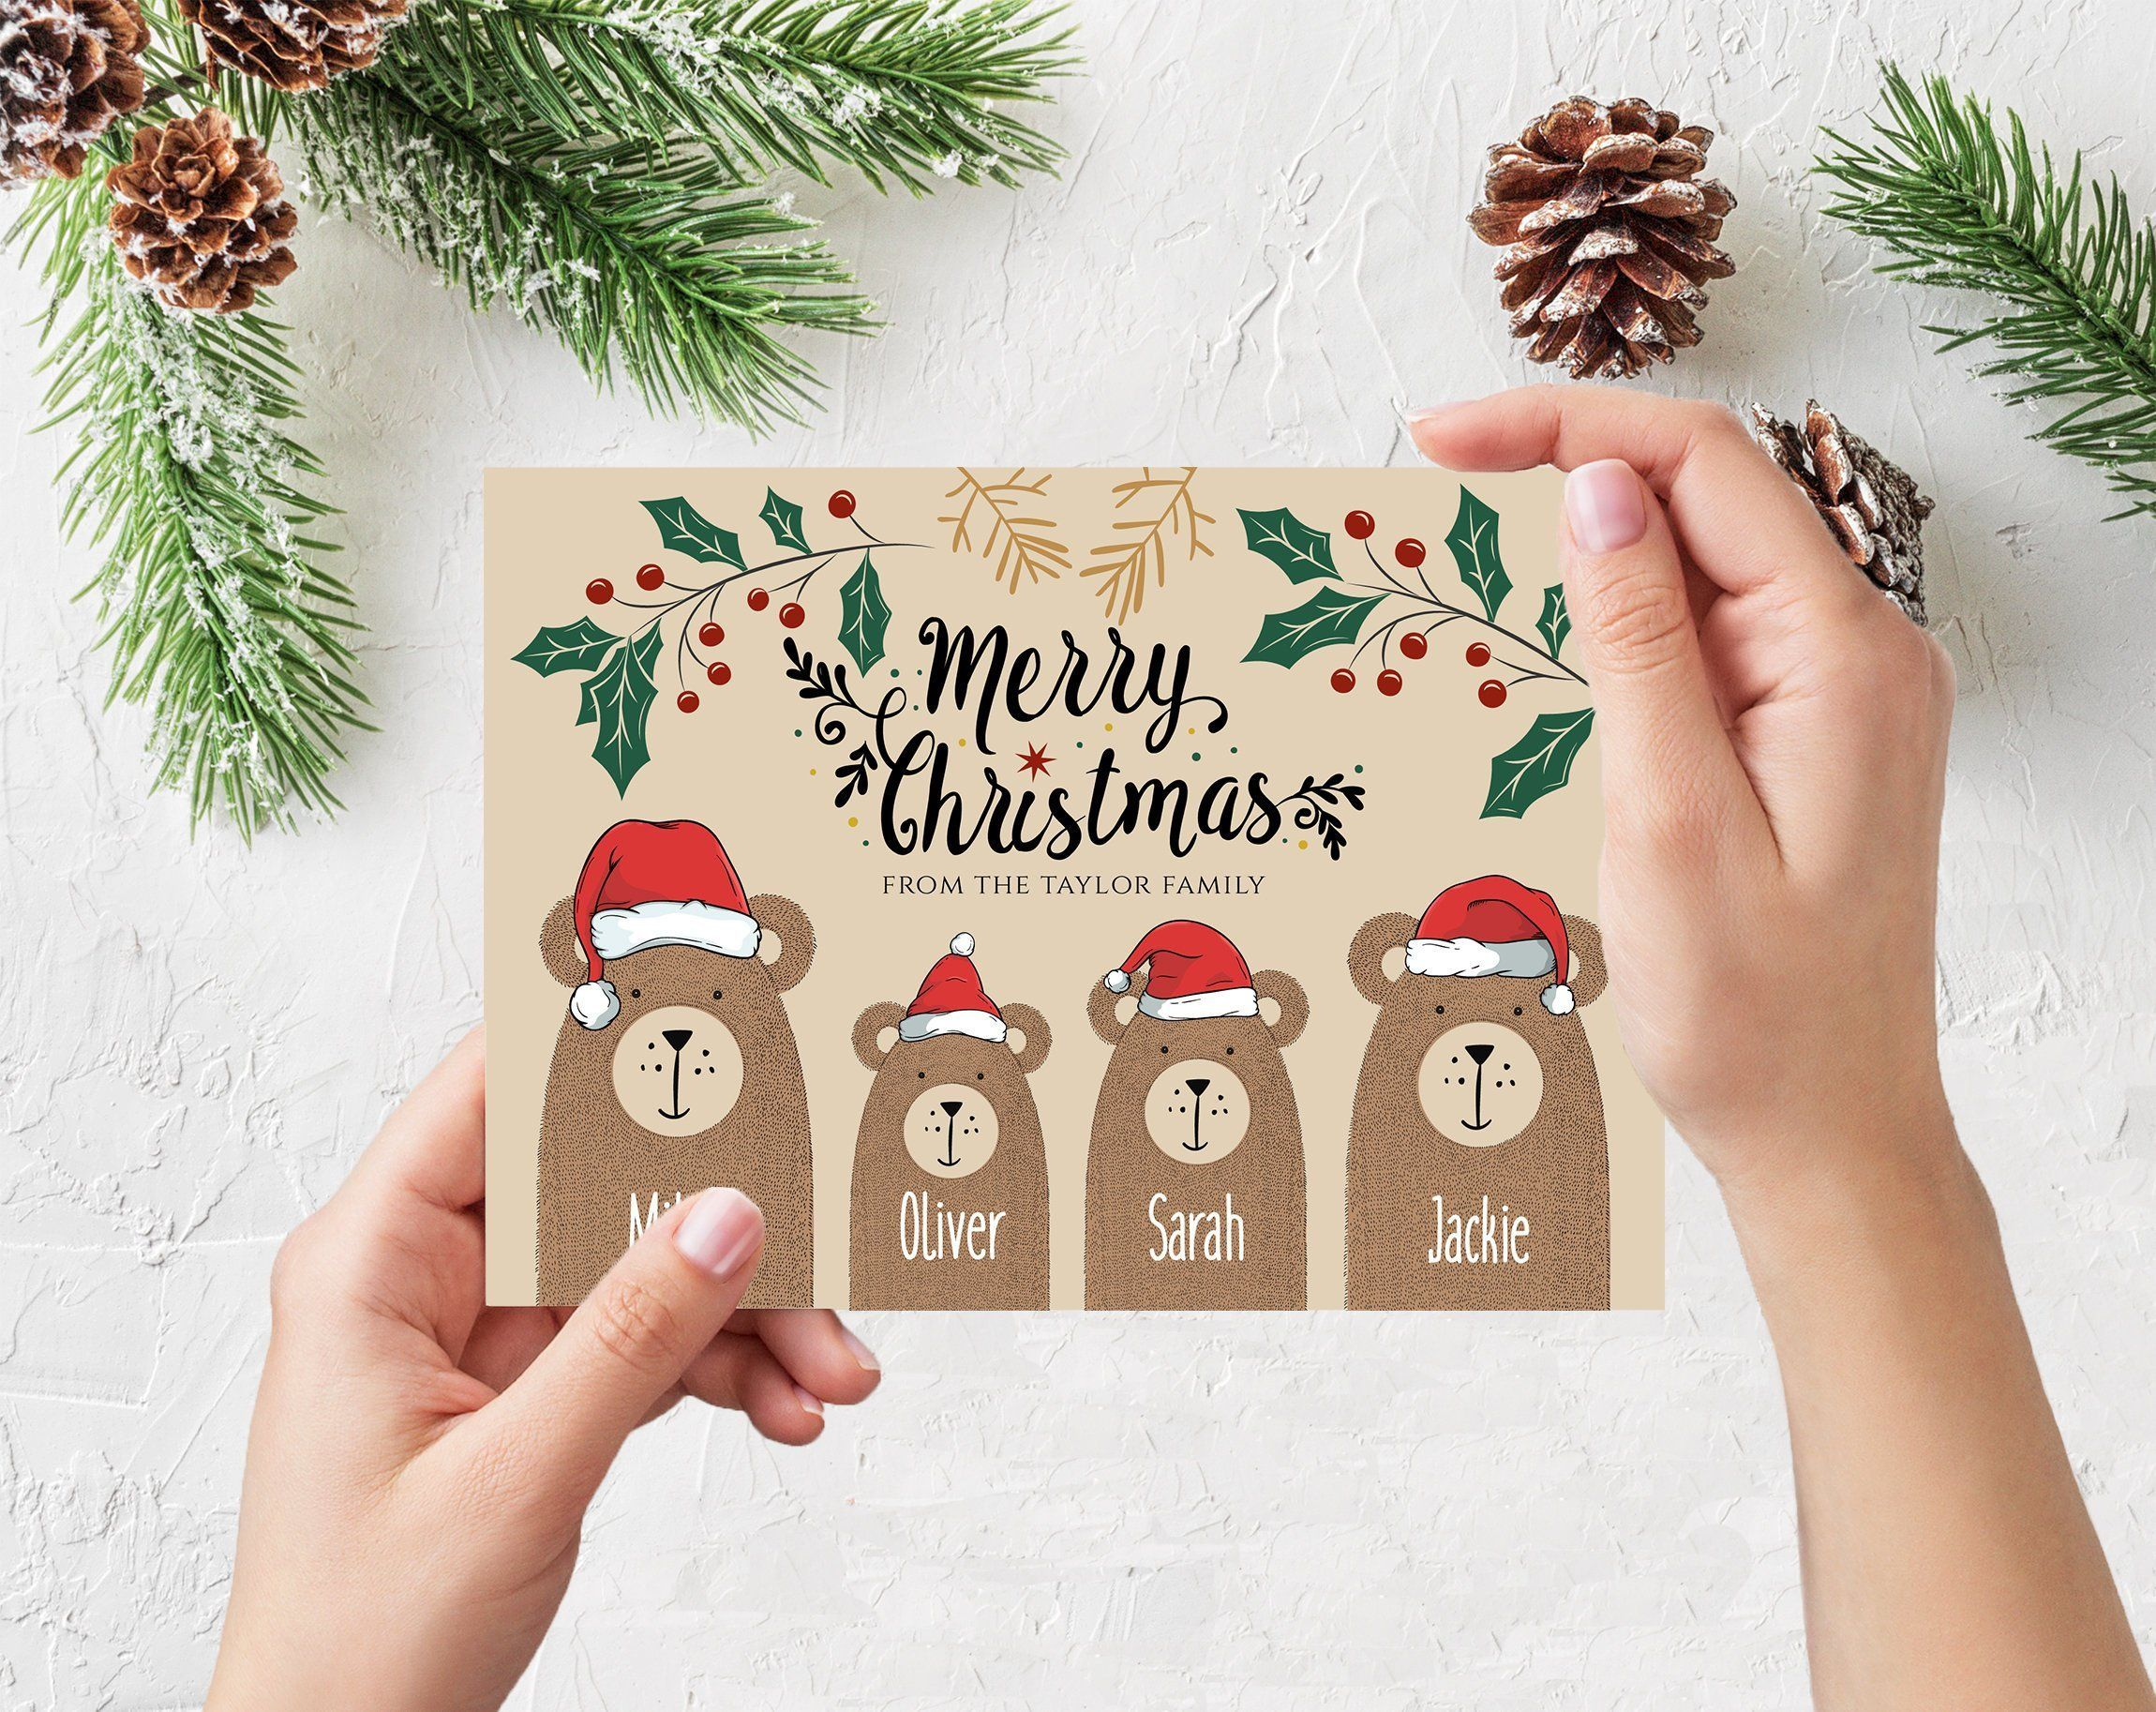 Personalized Christmas Cards -2020 Set of 3 Personalised Christmas Greeting Cards   Bear Family